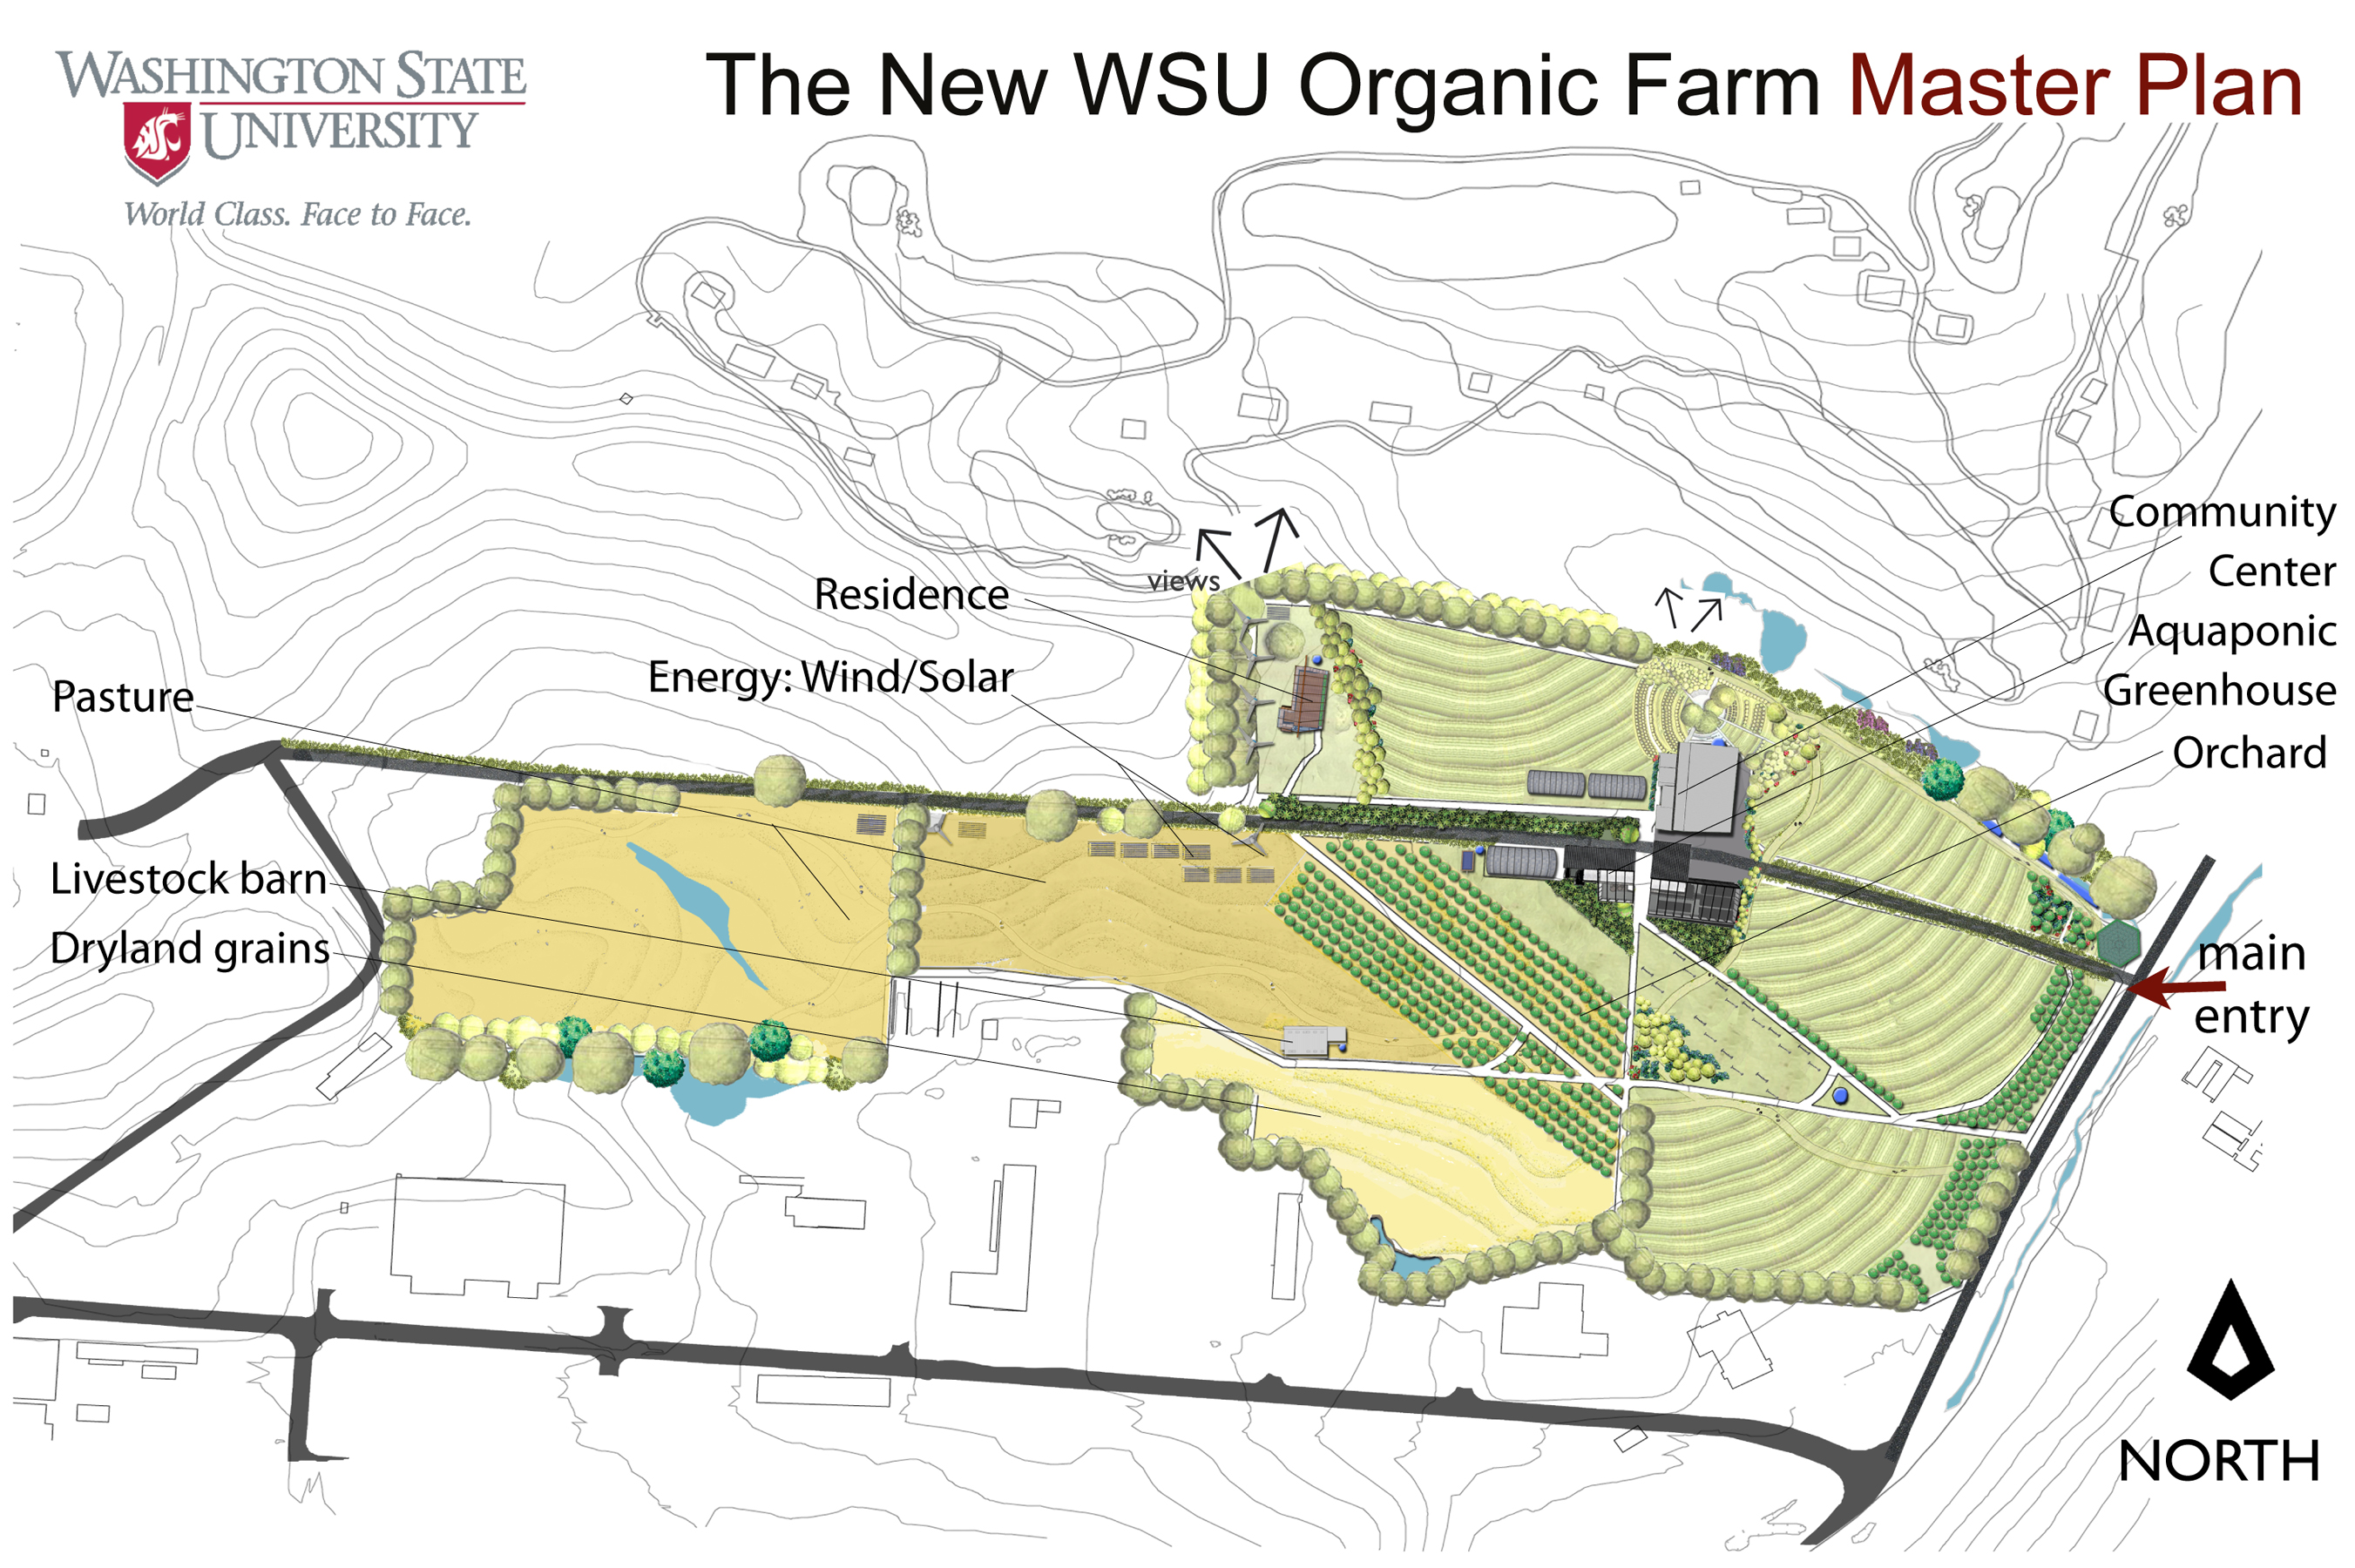 Wsu announces 5 million investment to support organic ag Farm plan